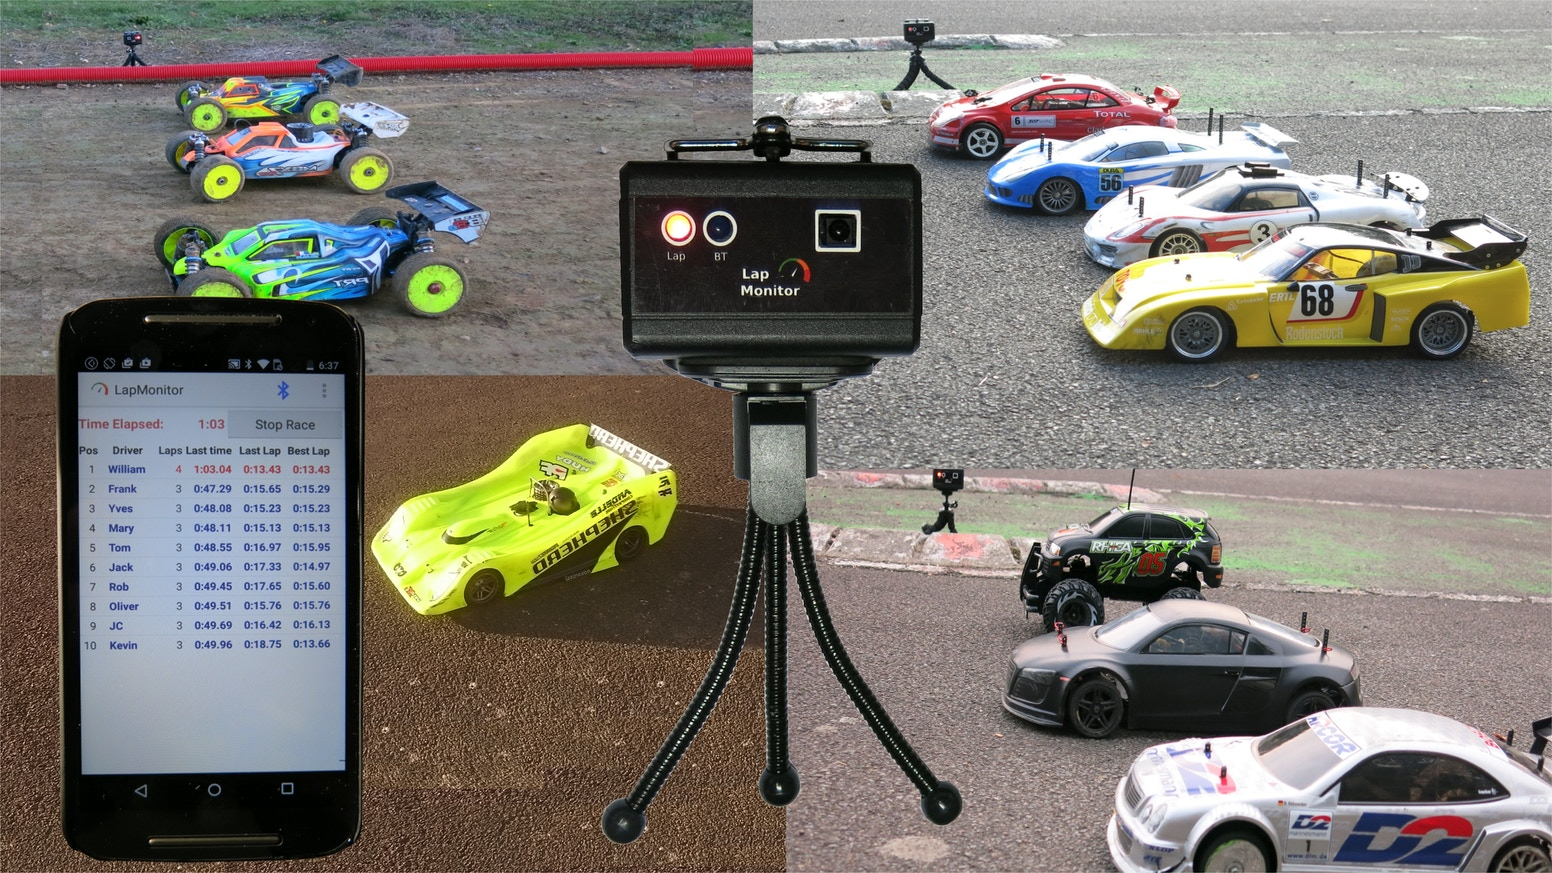 Lapmonitor Multi User Lap Timing And Counting System By